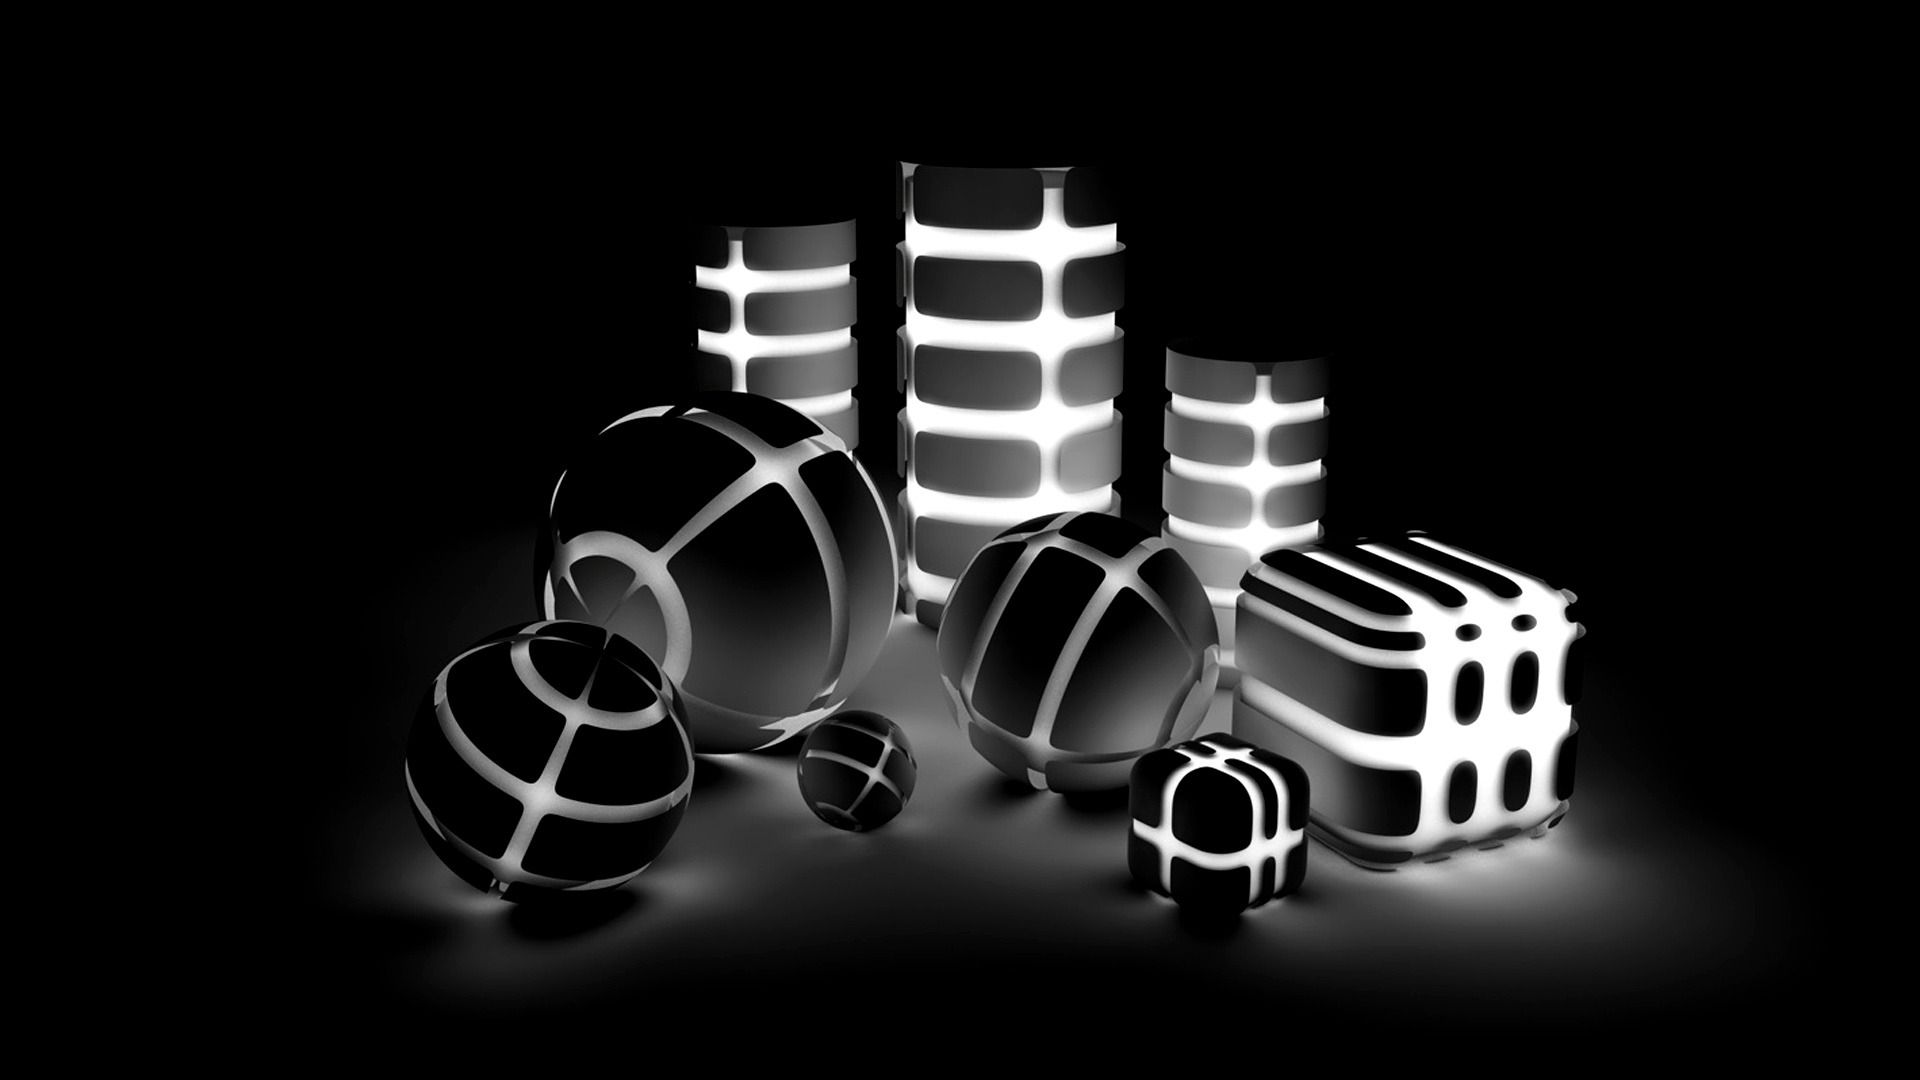 Hd wallpaper black and white - 3d Wallpapers Black And White Hd Wallpaper